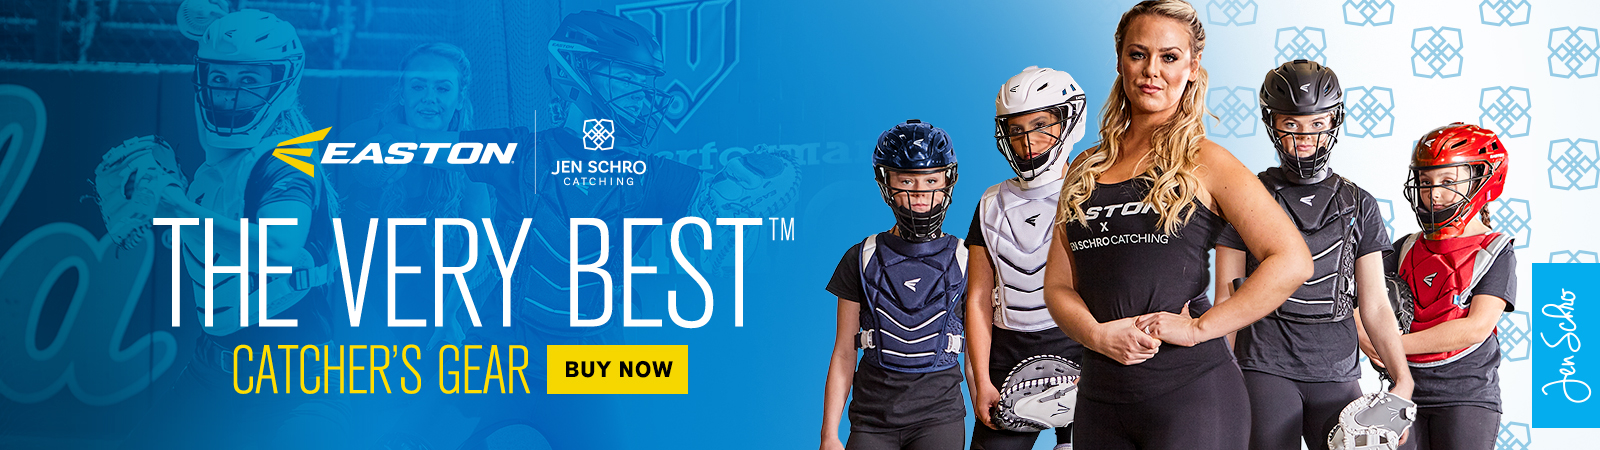 Jen Schro The Very Best Catcher's Gear